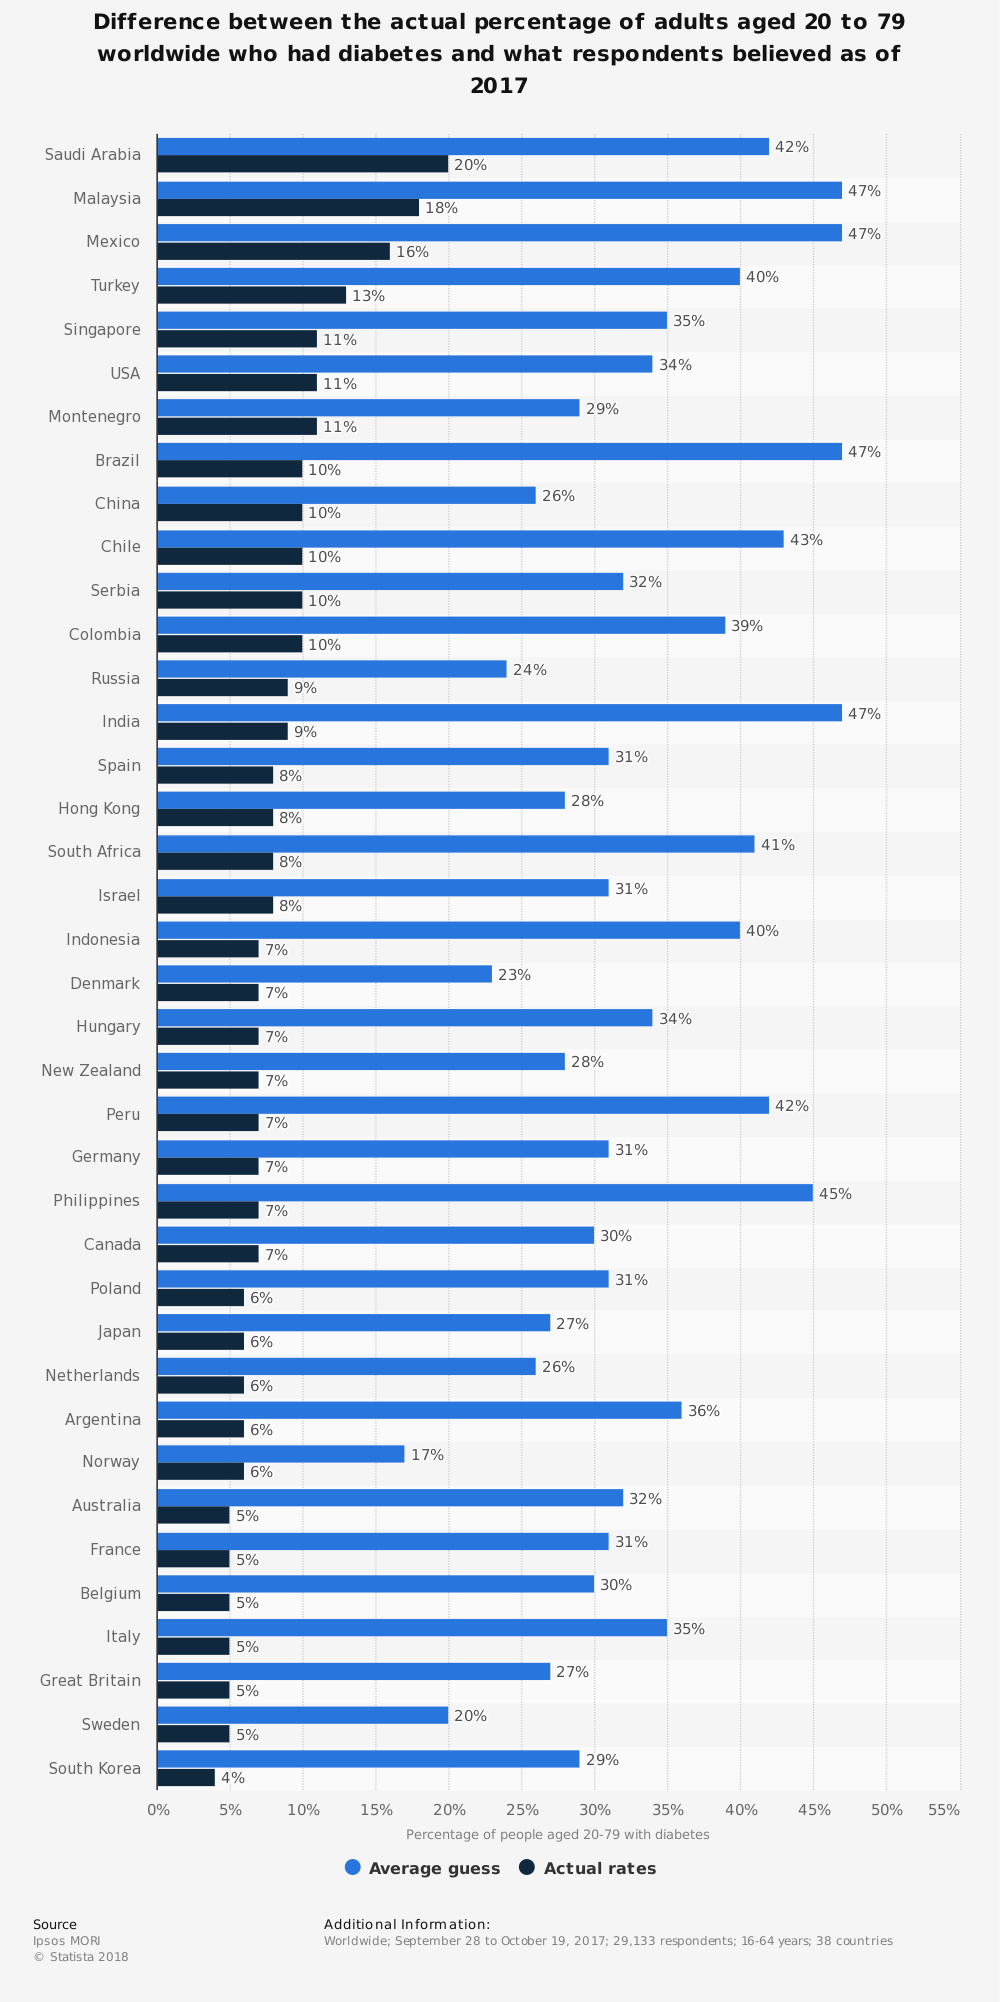 Statistic: Difference between the actual percentage of adults aged 20 to 79 worldwide who had diabetes and what respondents believed as of 2017 | Statista